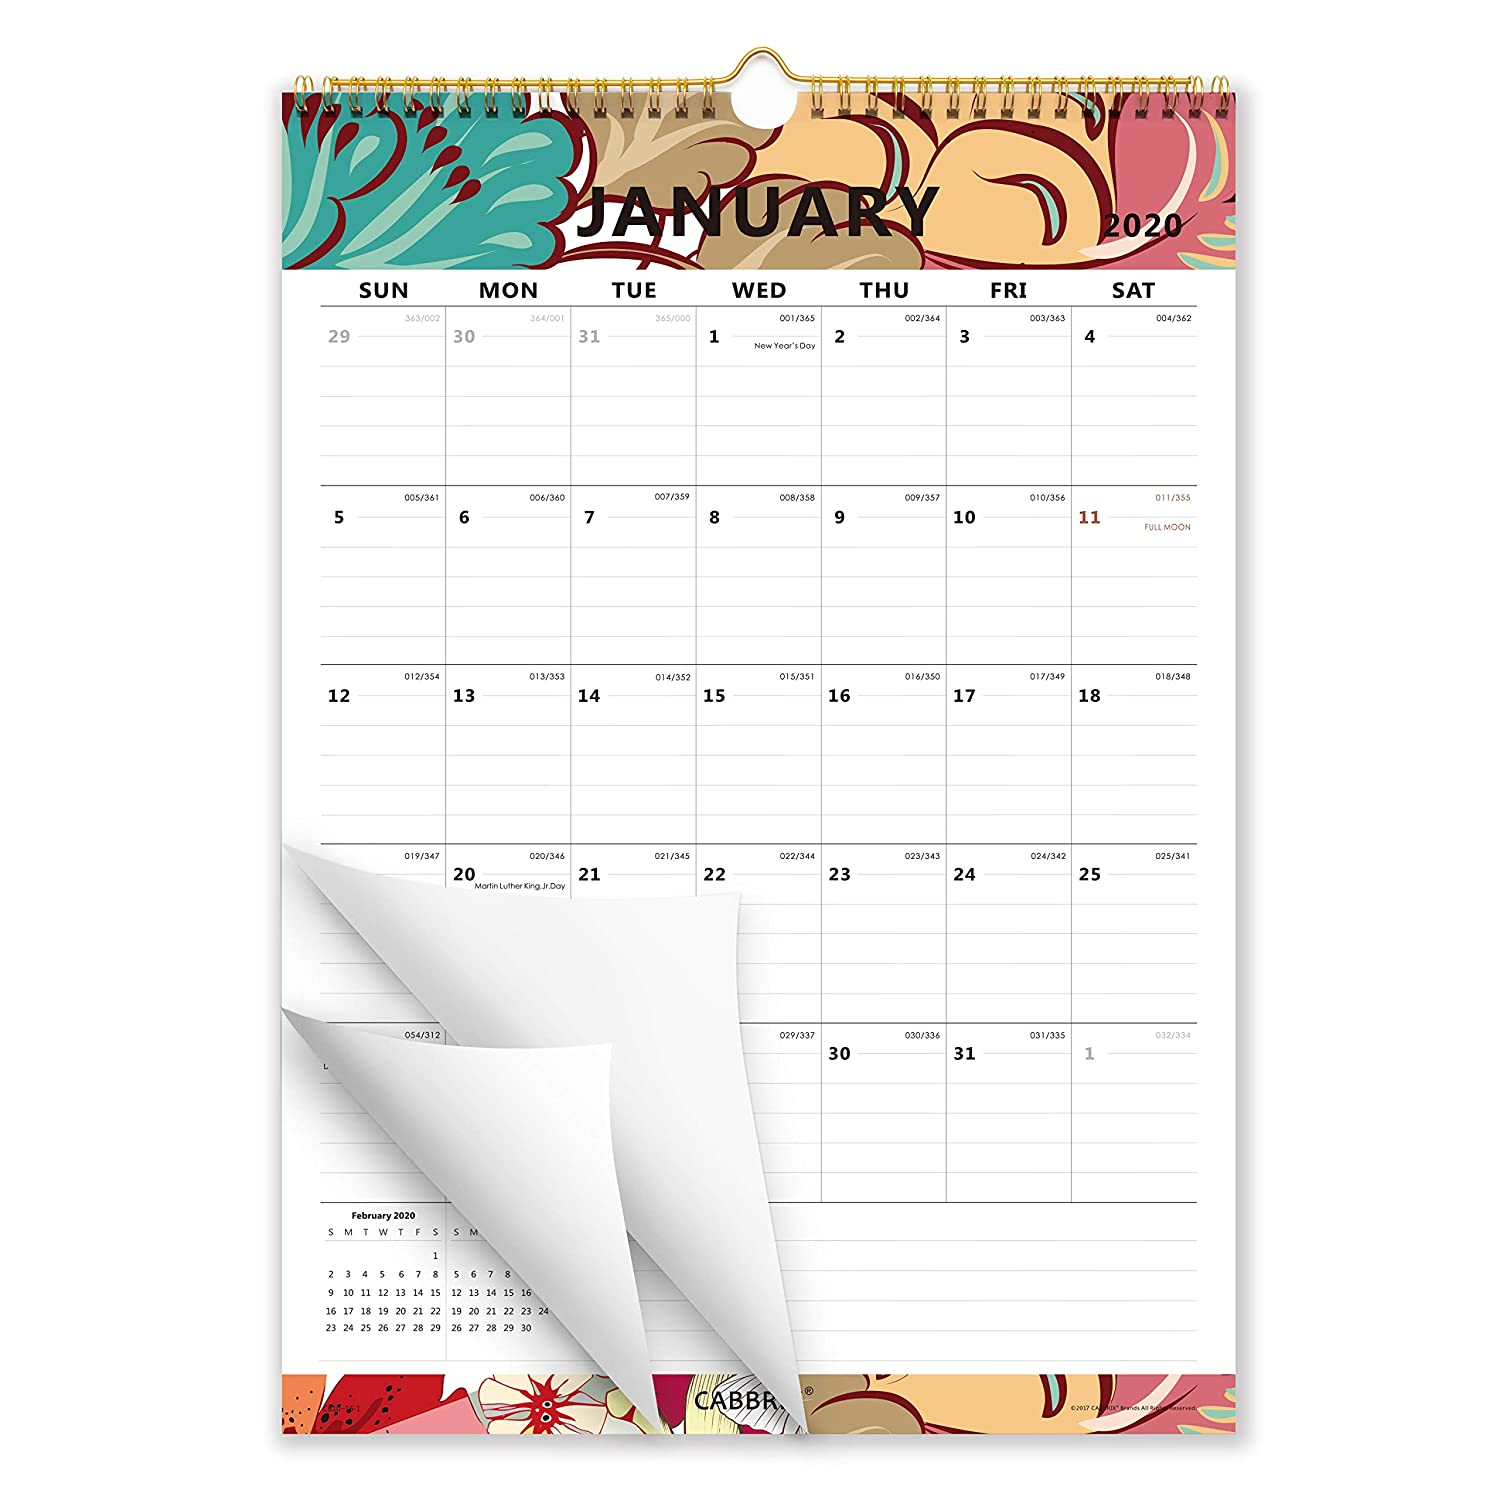 Cabbrix Academic Year Monthly Wall Calendar, January 2020 - June 2021, Vertical, Ruled Blocks, 17 x 12 Inches